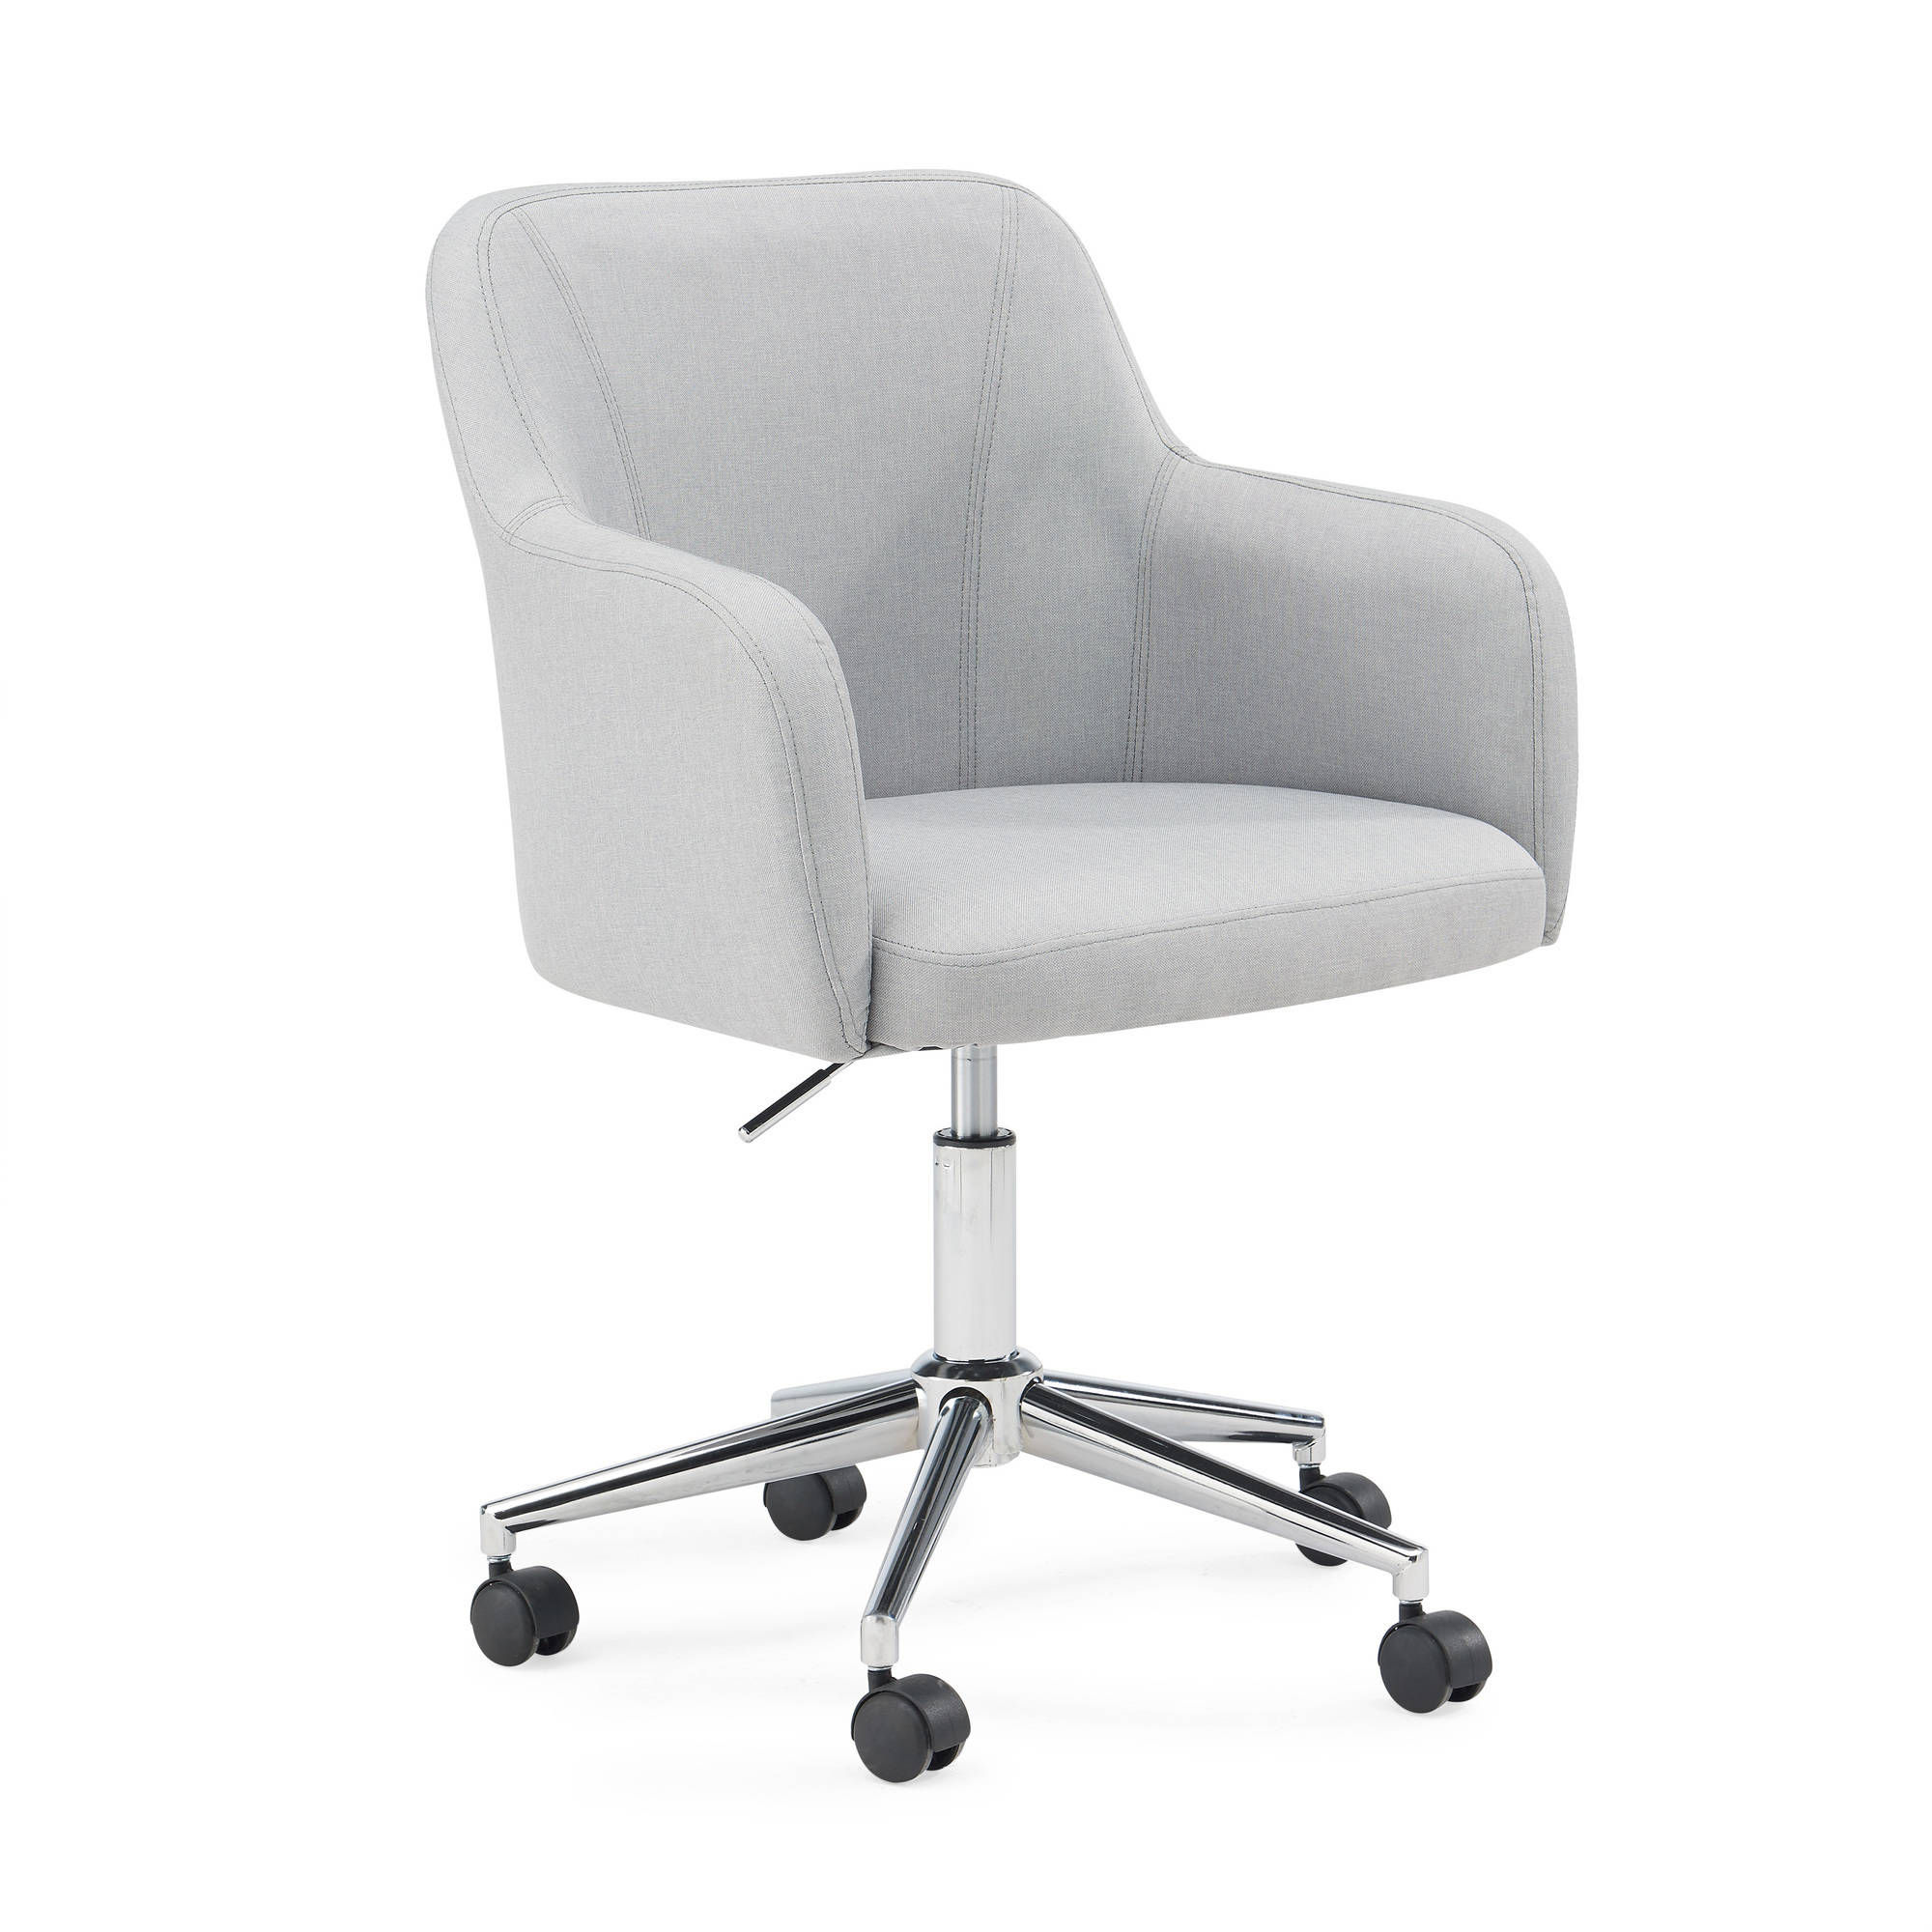 Good Mainstays Low Back Office Chair, Multiple Colors